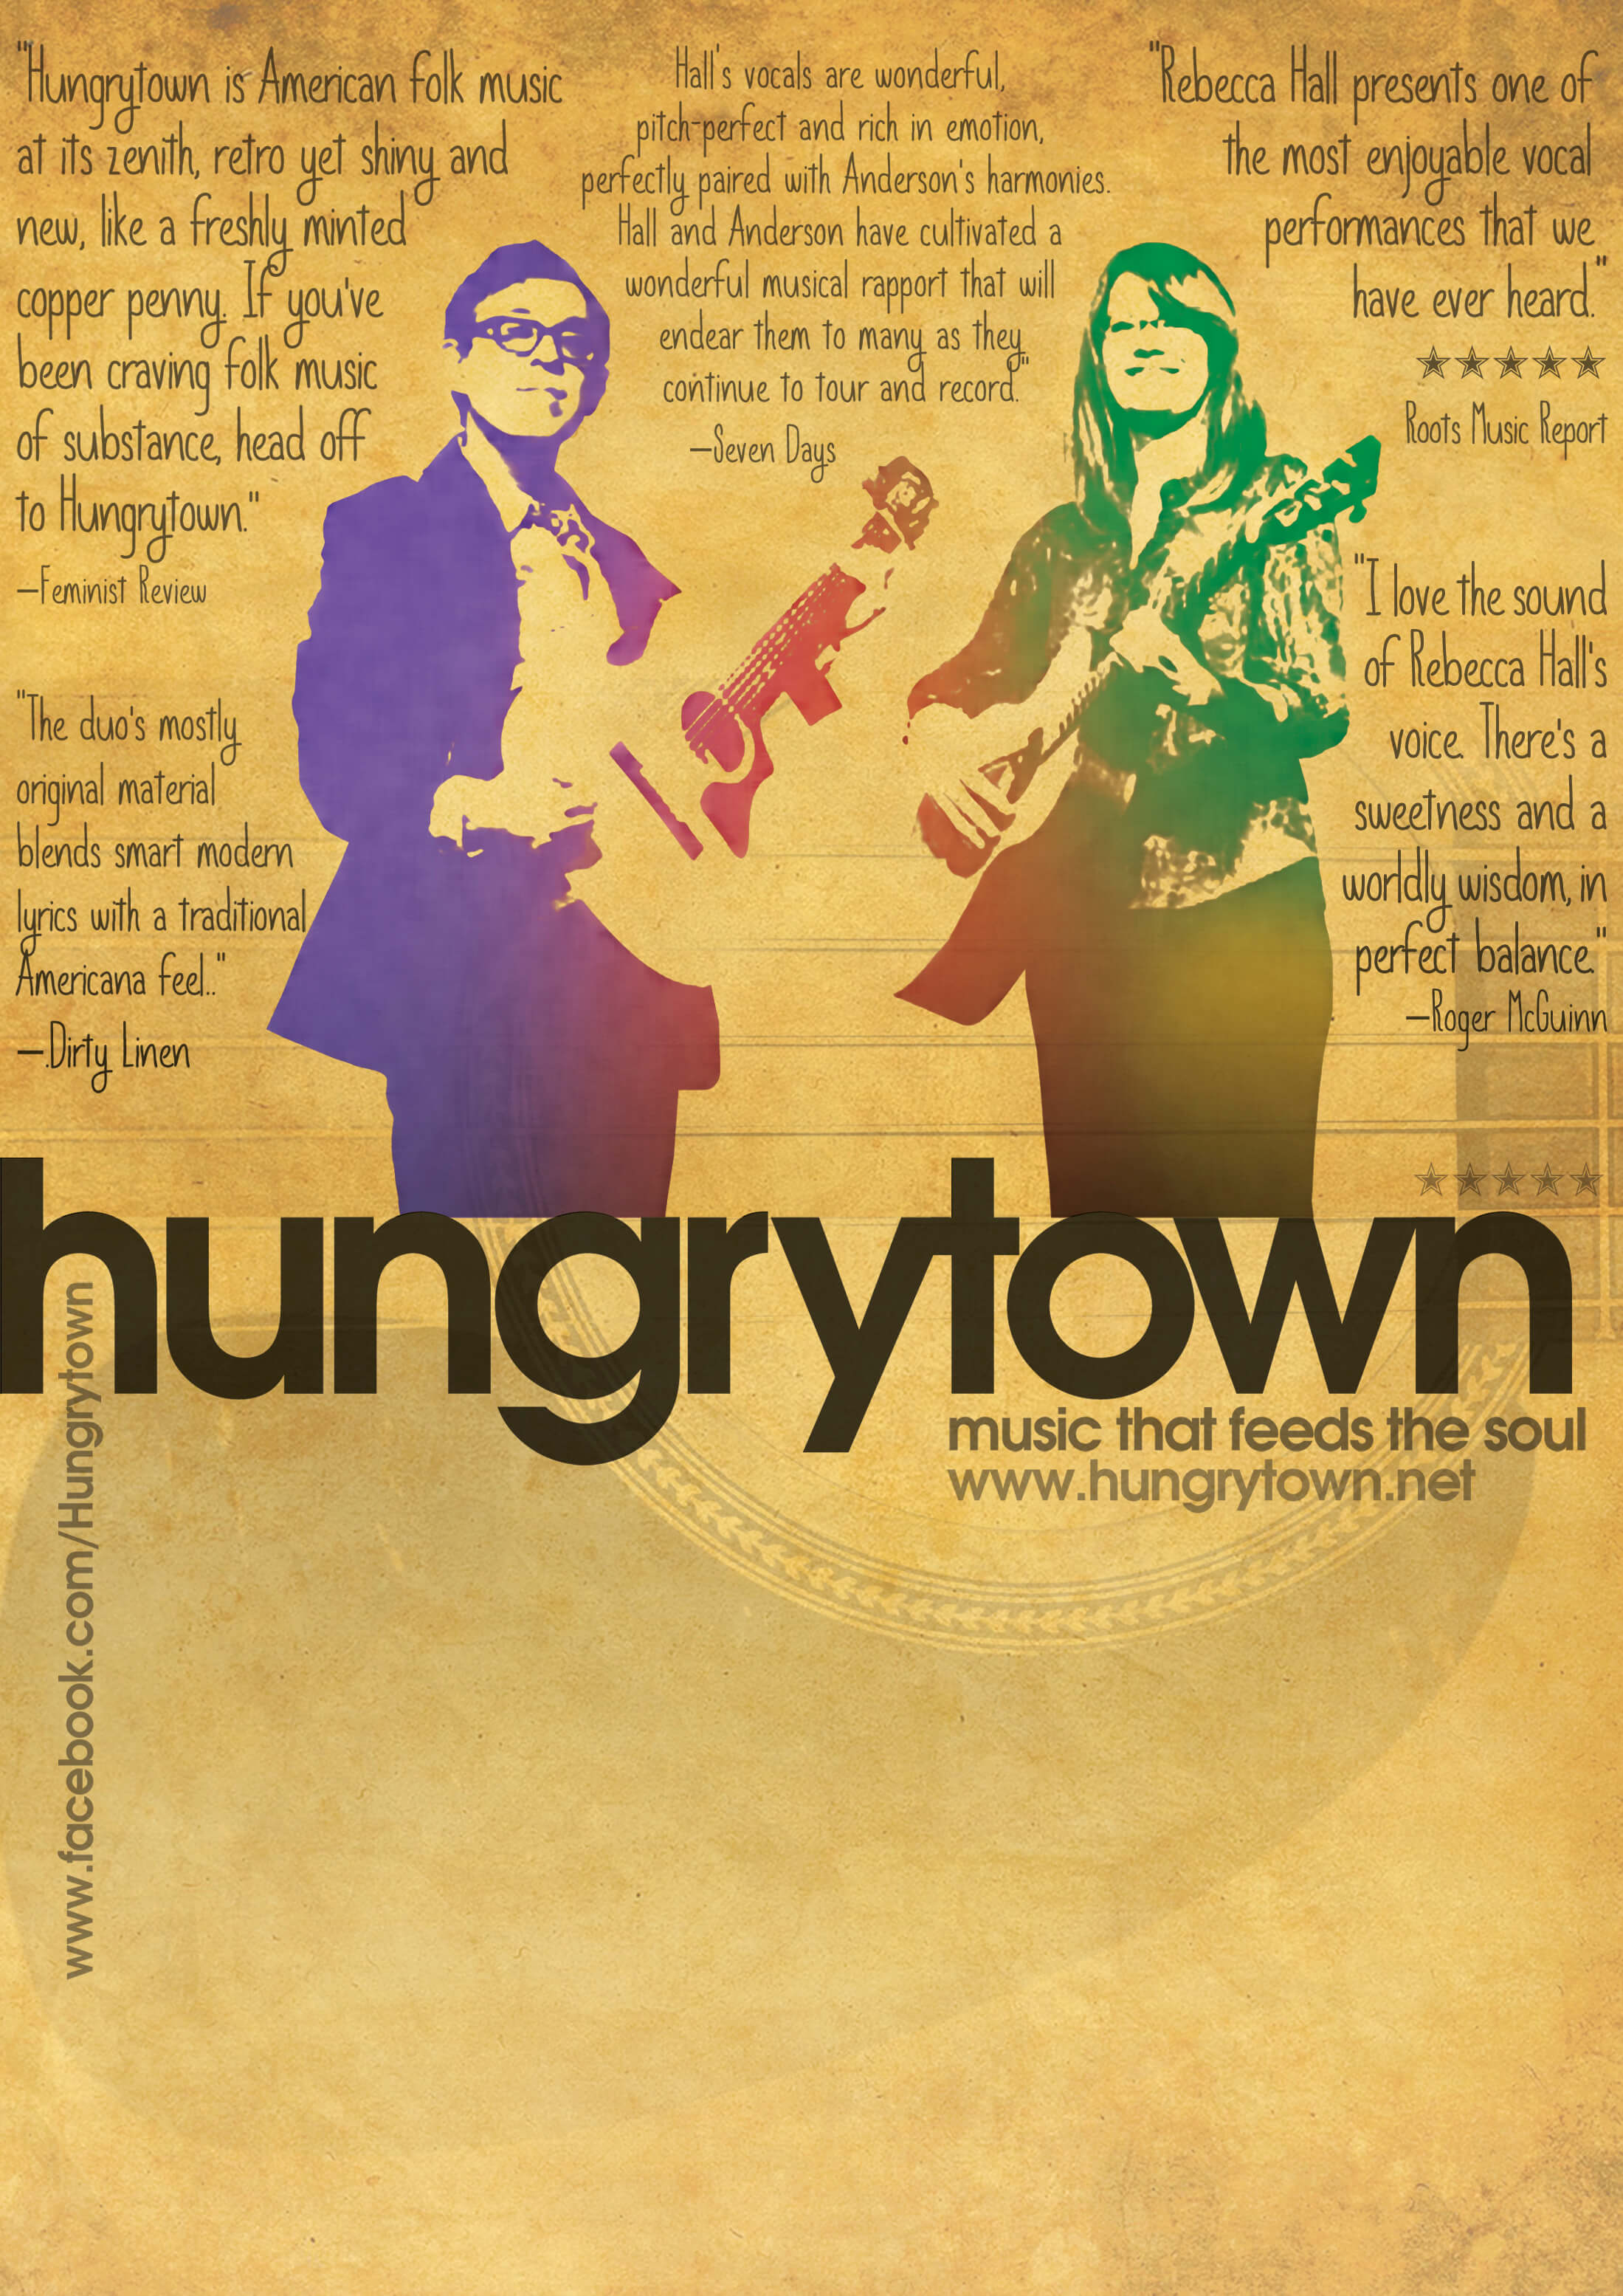 Hungrytown in Concert